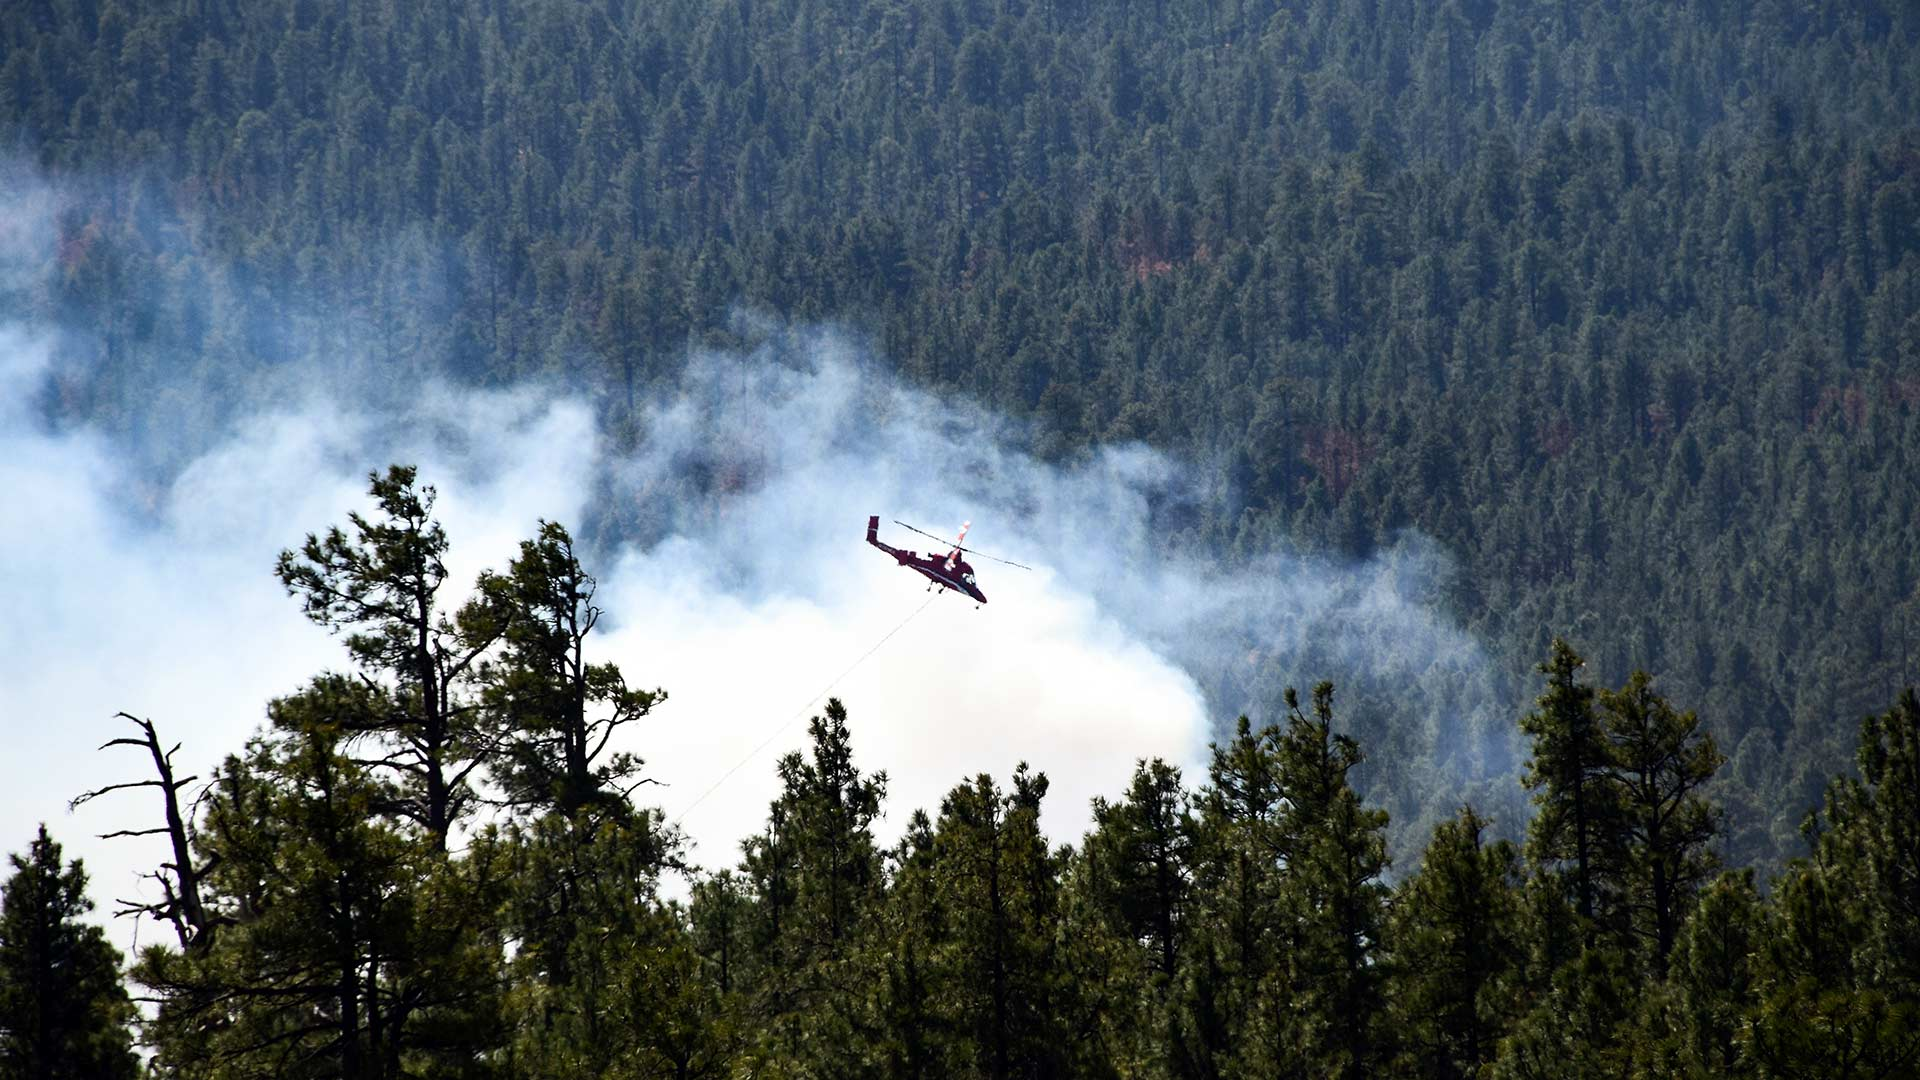 A helicopter helps battle the Tinder Fire, in north-central Arizona, April 30, 2018.